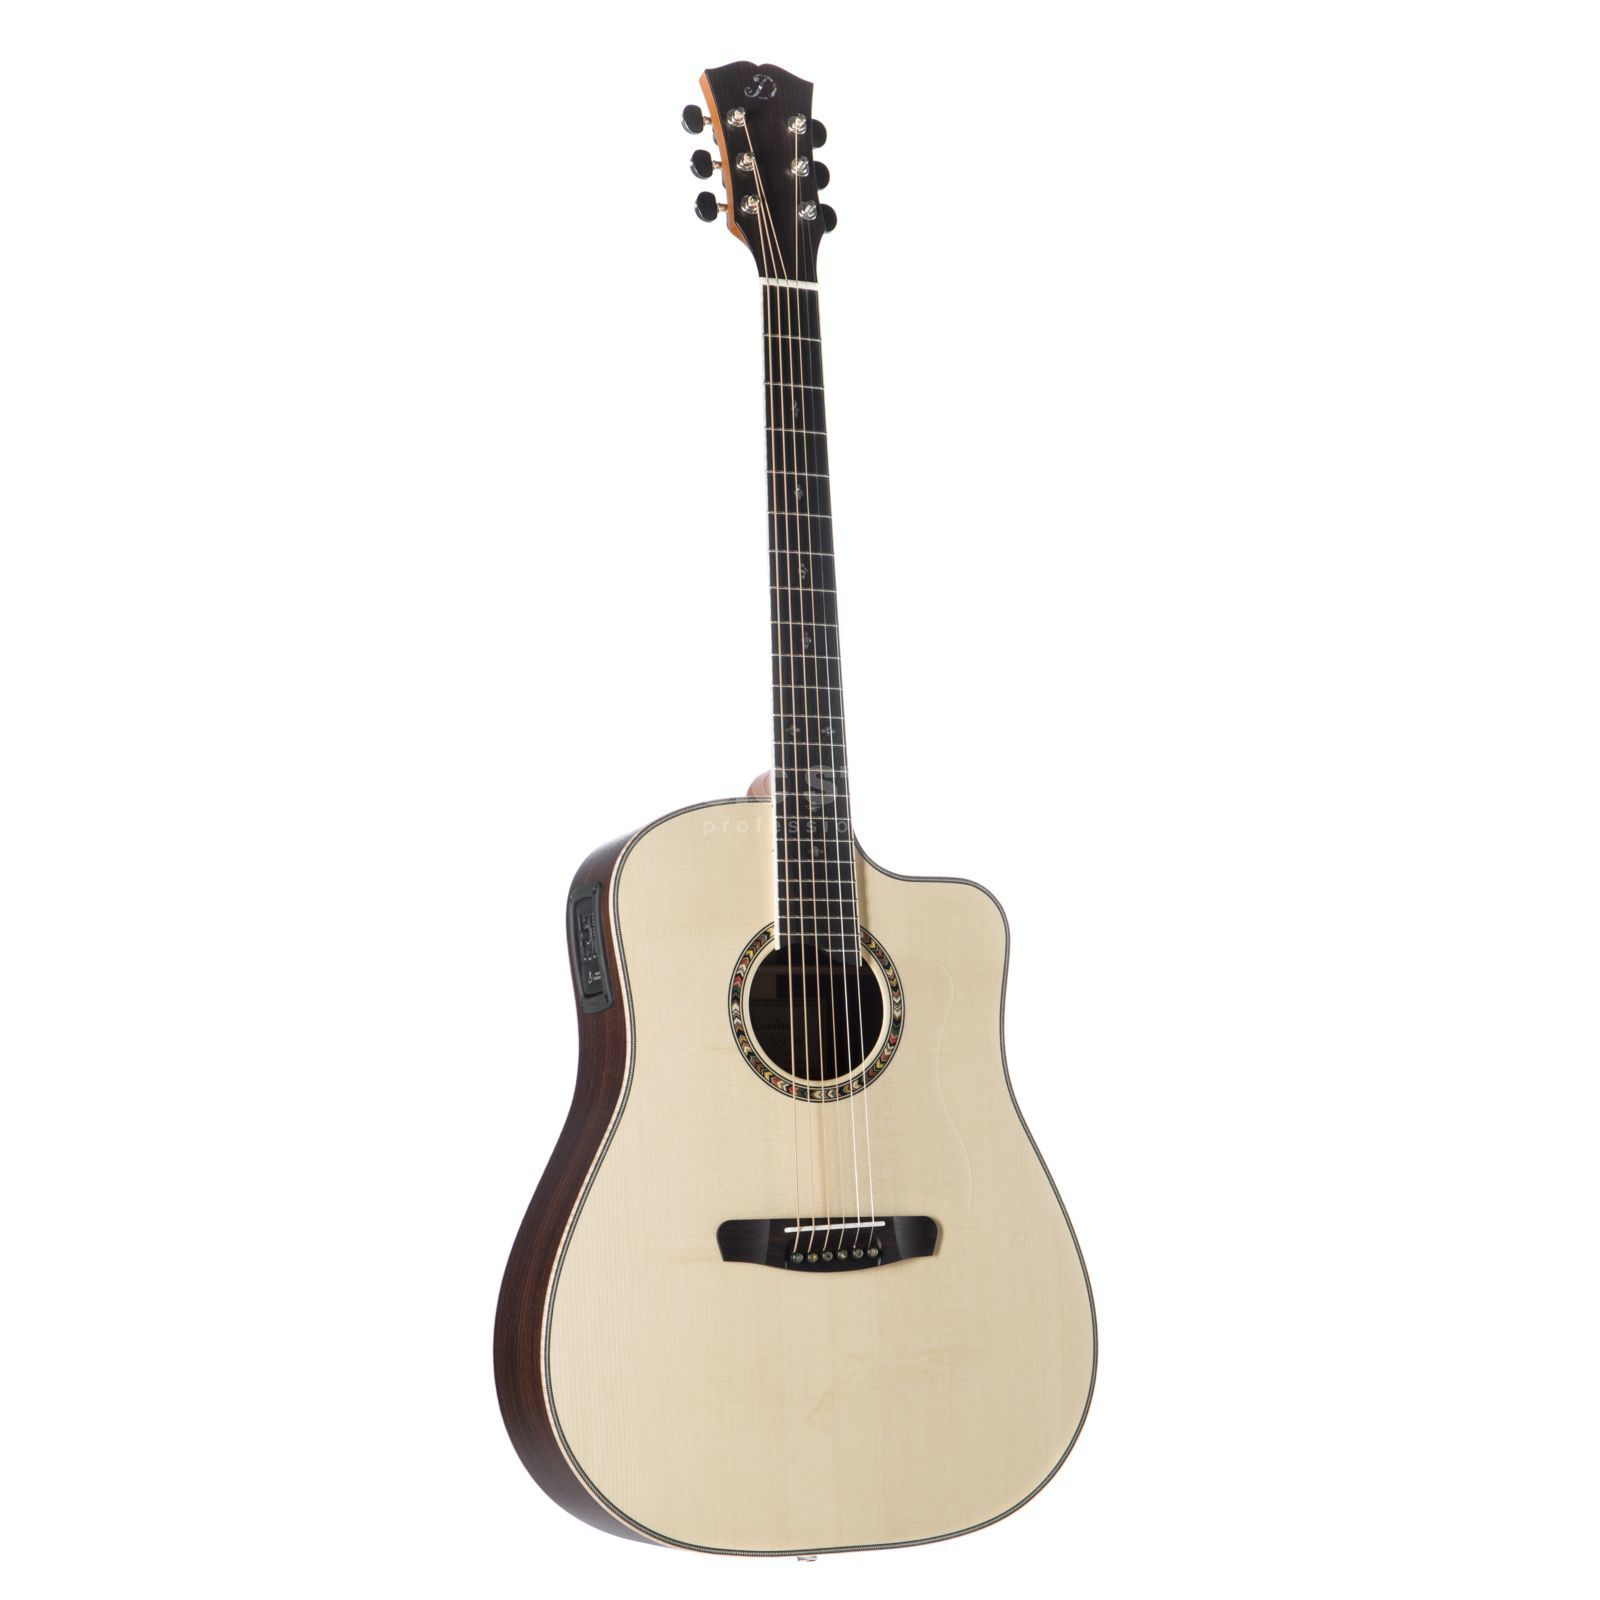 Dowina Guitars Cabernet DCE ds Изображение товара